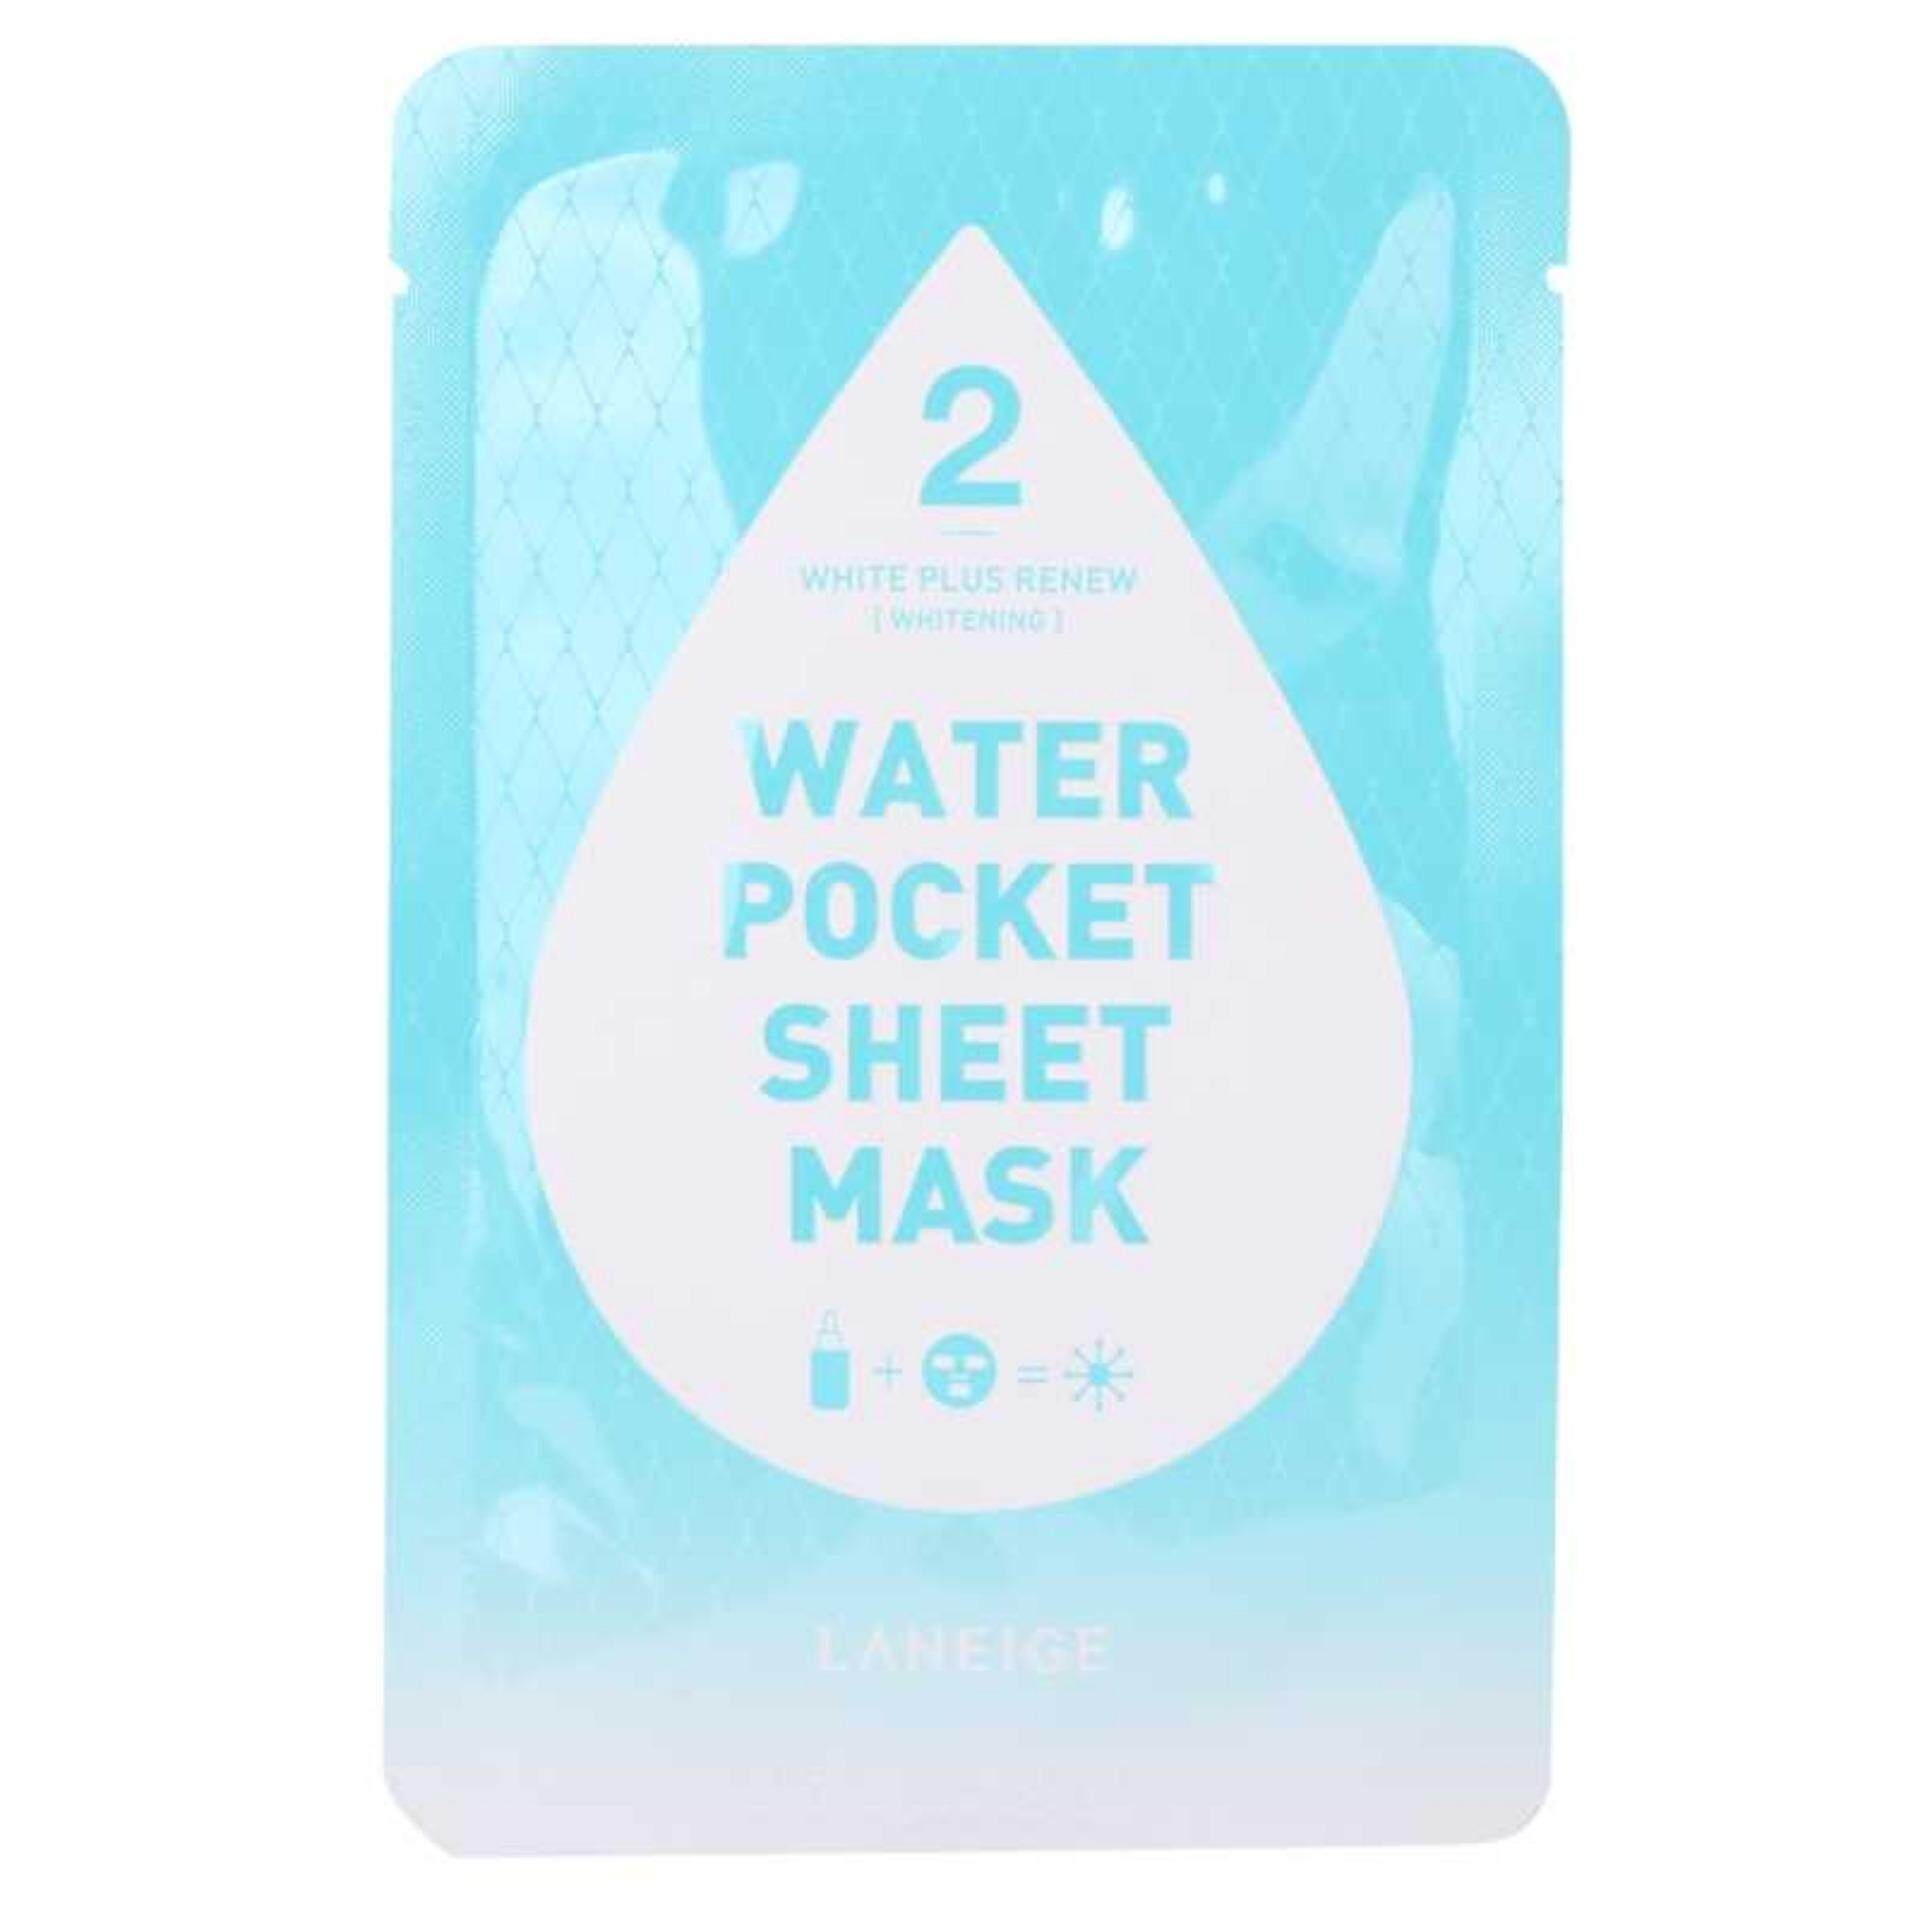 Sell Ab30118 Laneige White Cheapest Best Quality My Store Plus Renew Trial Kit 4 Items Myr 22 Water Pocket Sheet Mask 16ml Whiteningmyr22 29 Authentic Itemsmyr29